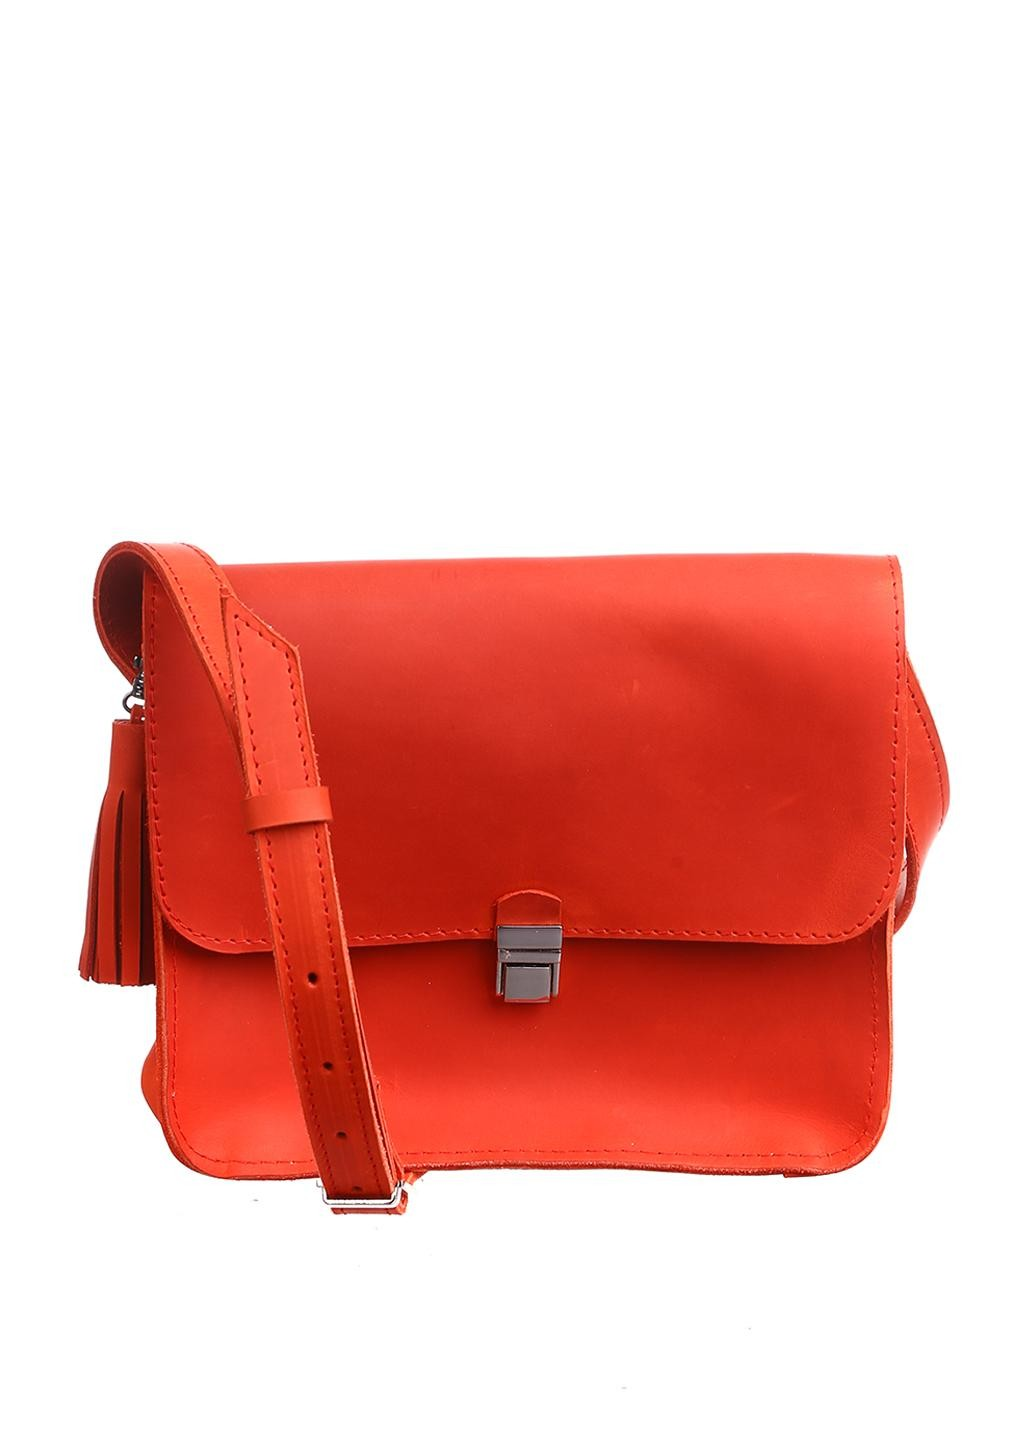 Orange leather purse - 1